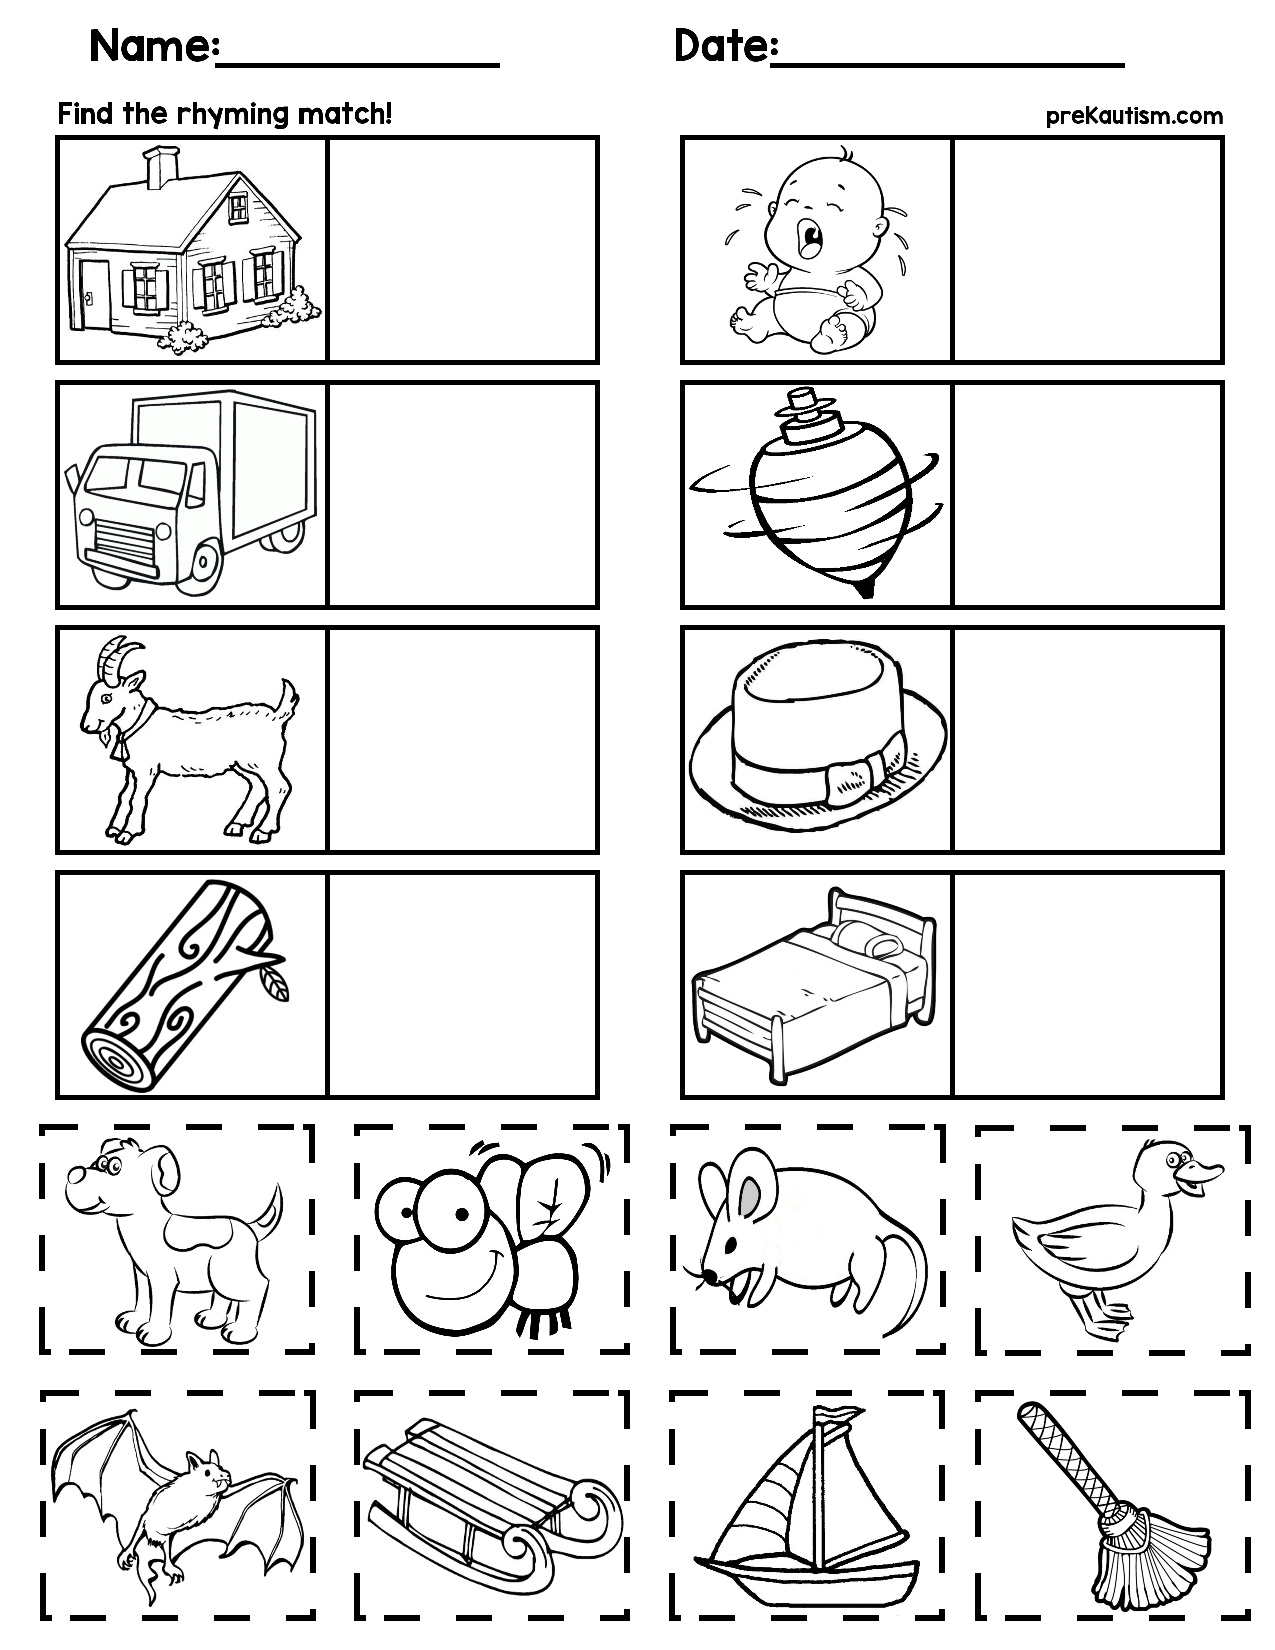 $1   Rhyming worksheets for preschoolers   5 pages [ 1650 x 1275 Pixel ]